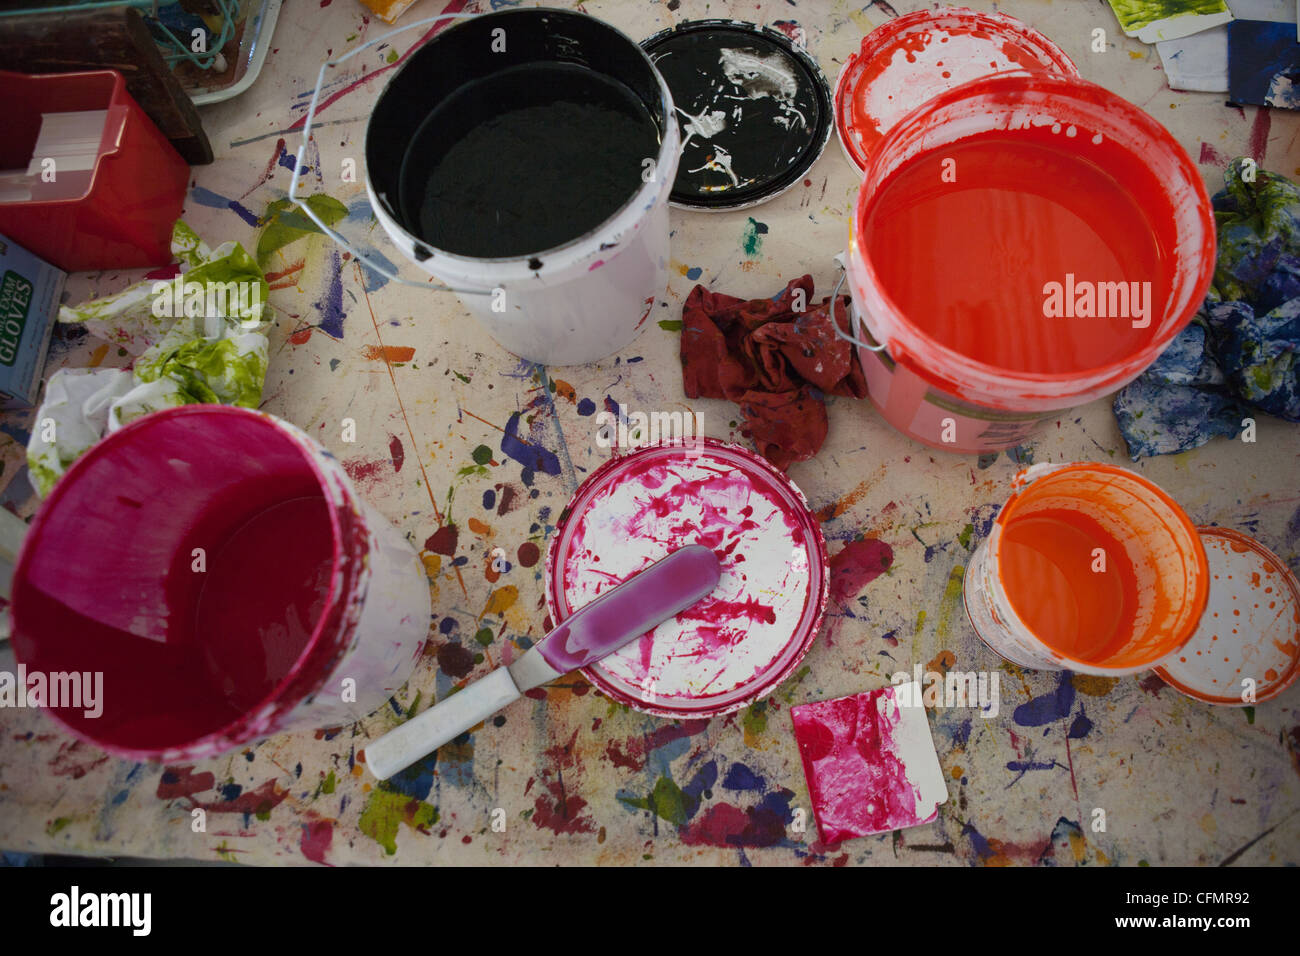 Open tubs of paint. - Stock Image